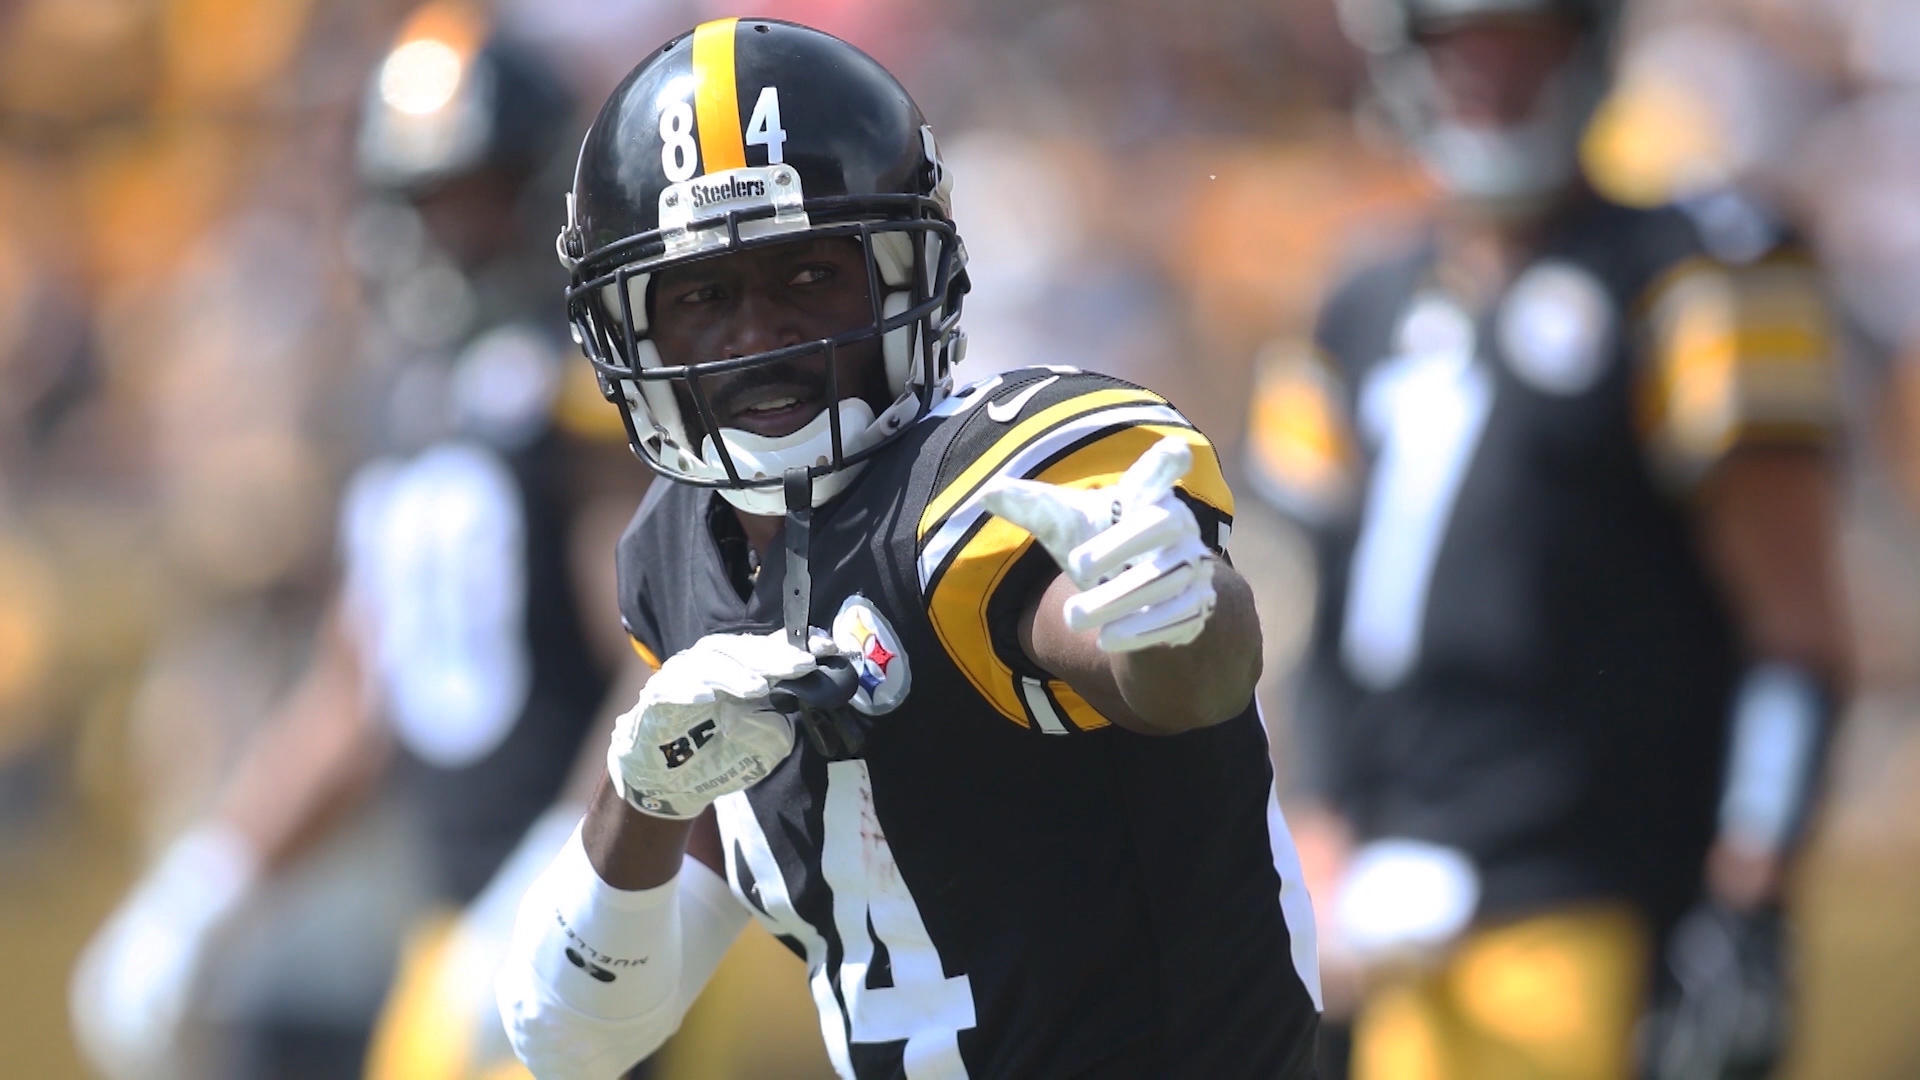 Le'Veon Bell Free Agency Update: Steelers won't use tag on RB, who will become unrestricted FA